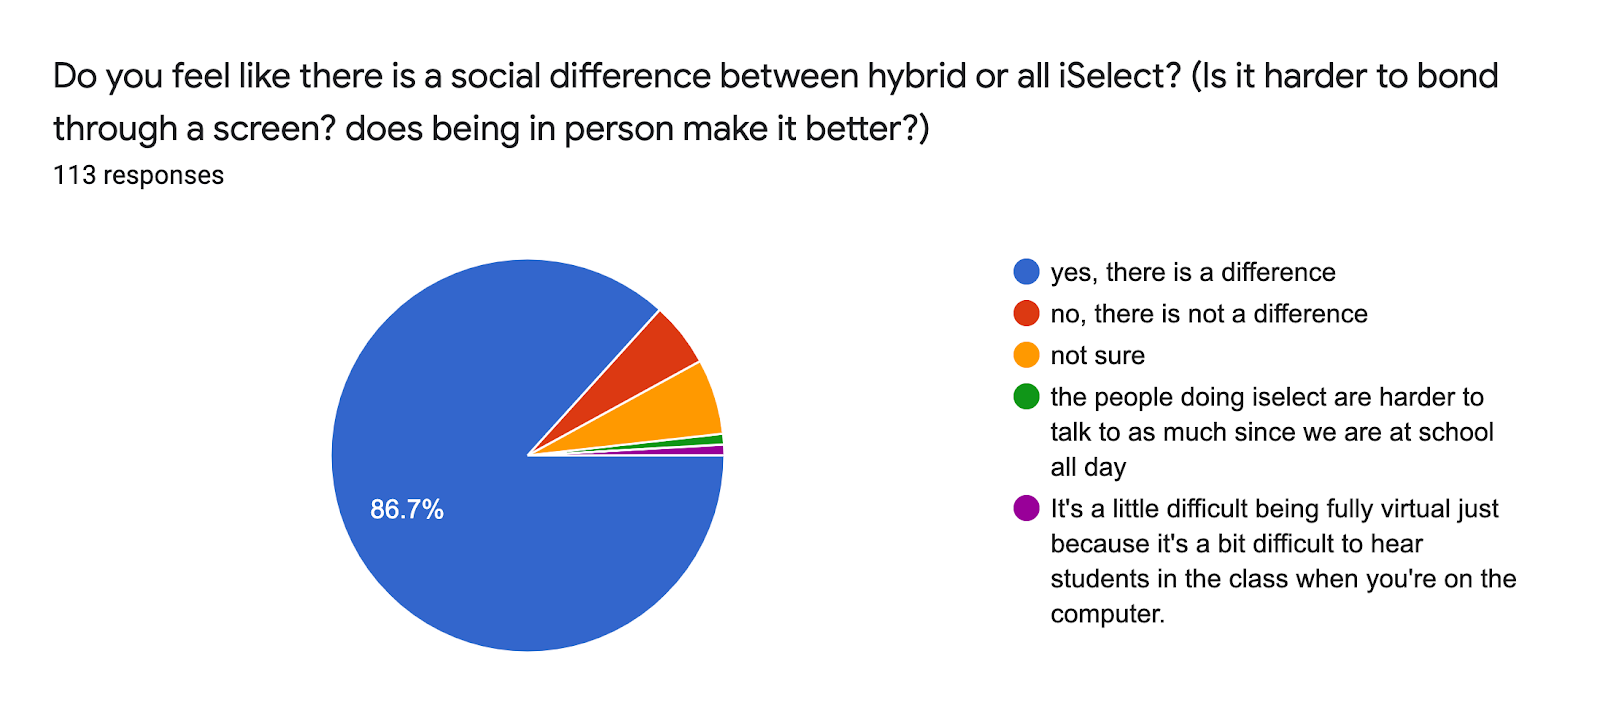 Forms response chart. Question title: Do you feel like there is a social difference between hybrid or all iSelect? (Is it harder to bond through a screen? does being in person make it better?). Number of responses: 113 responses.